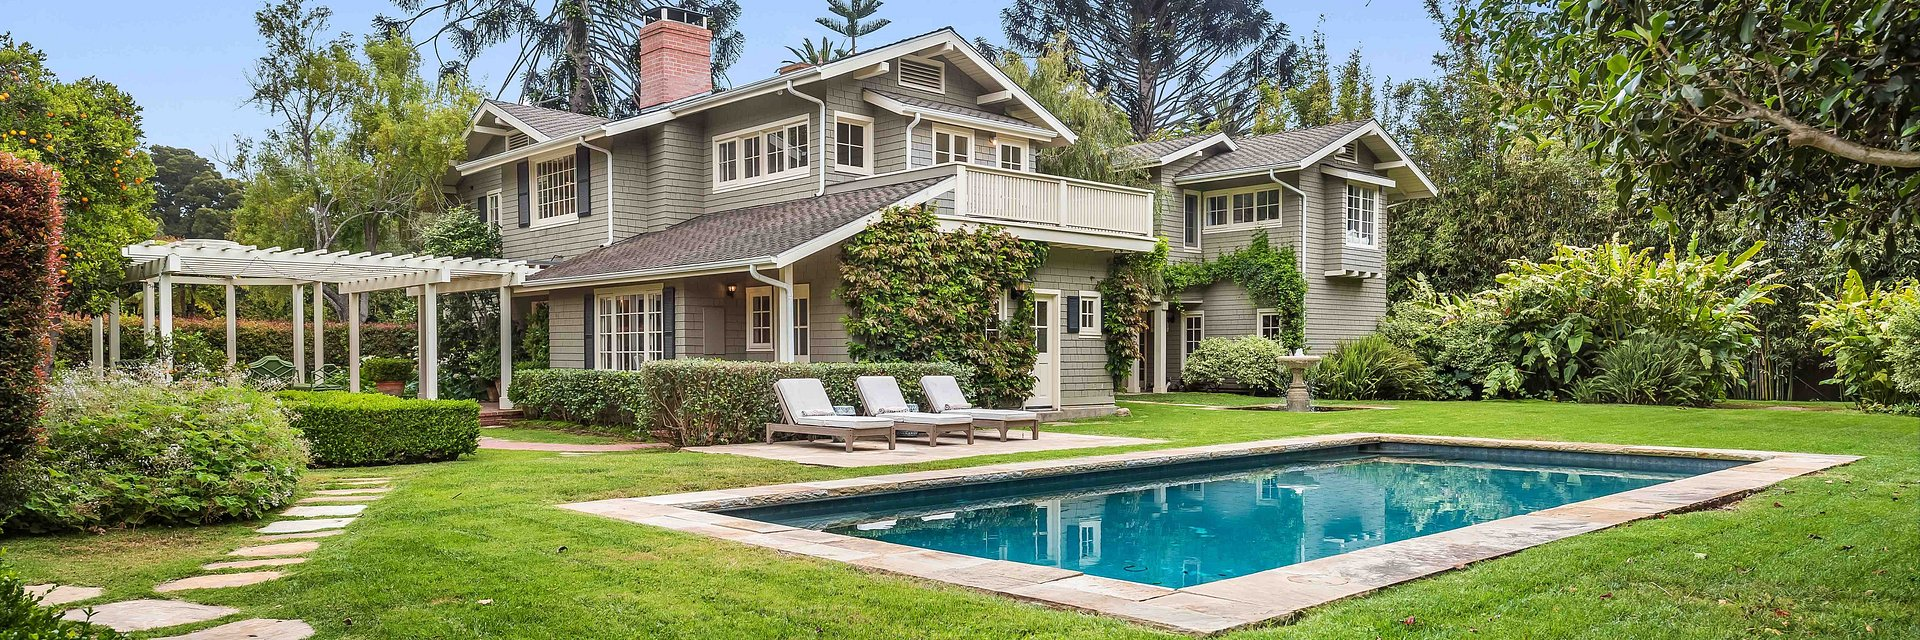 Coldwell Banker Residential Brokerage Lists Historic Montecito Property for $4.95 Million